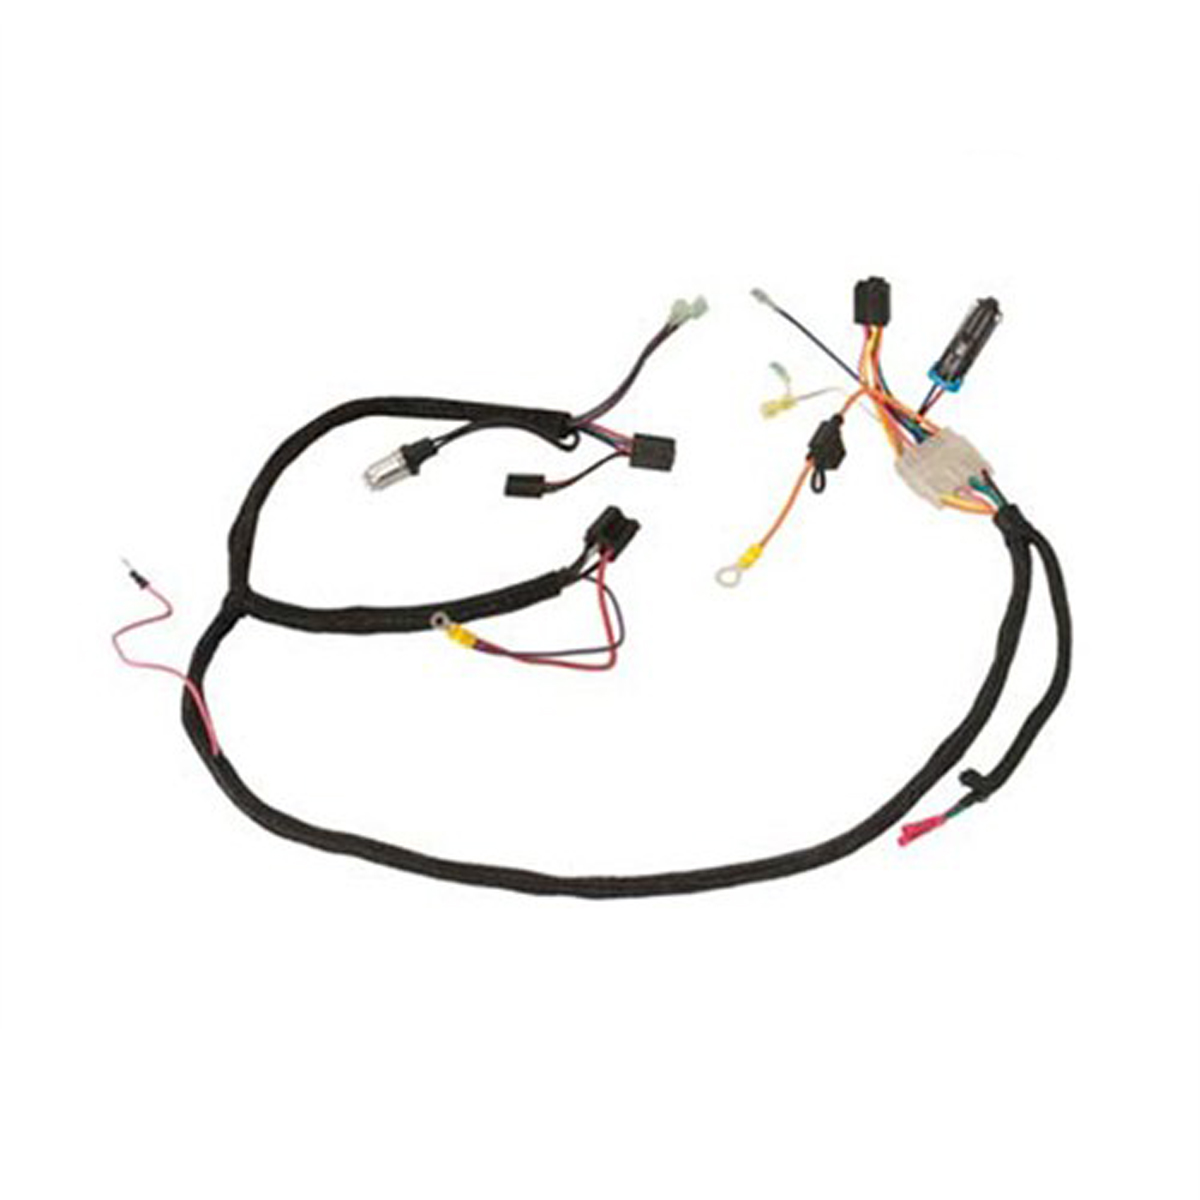 500002 500002 dixie chopper kohler efi wiring harness yanmar wiring harness at creativeand.co